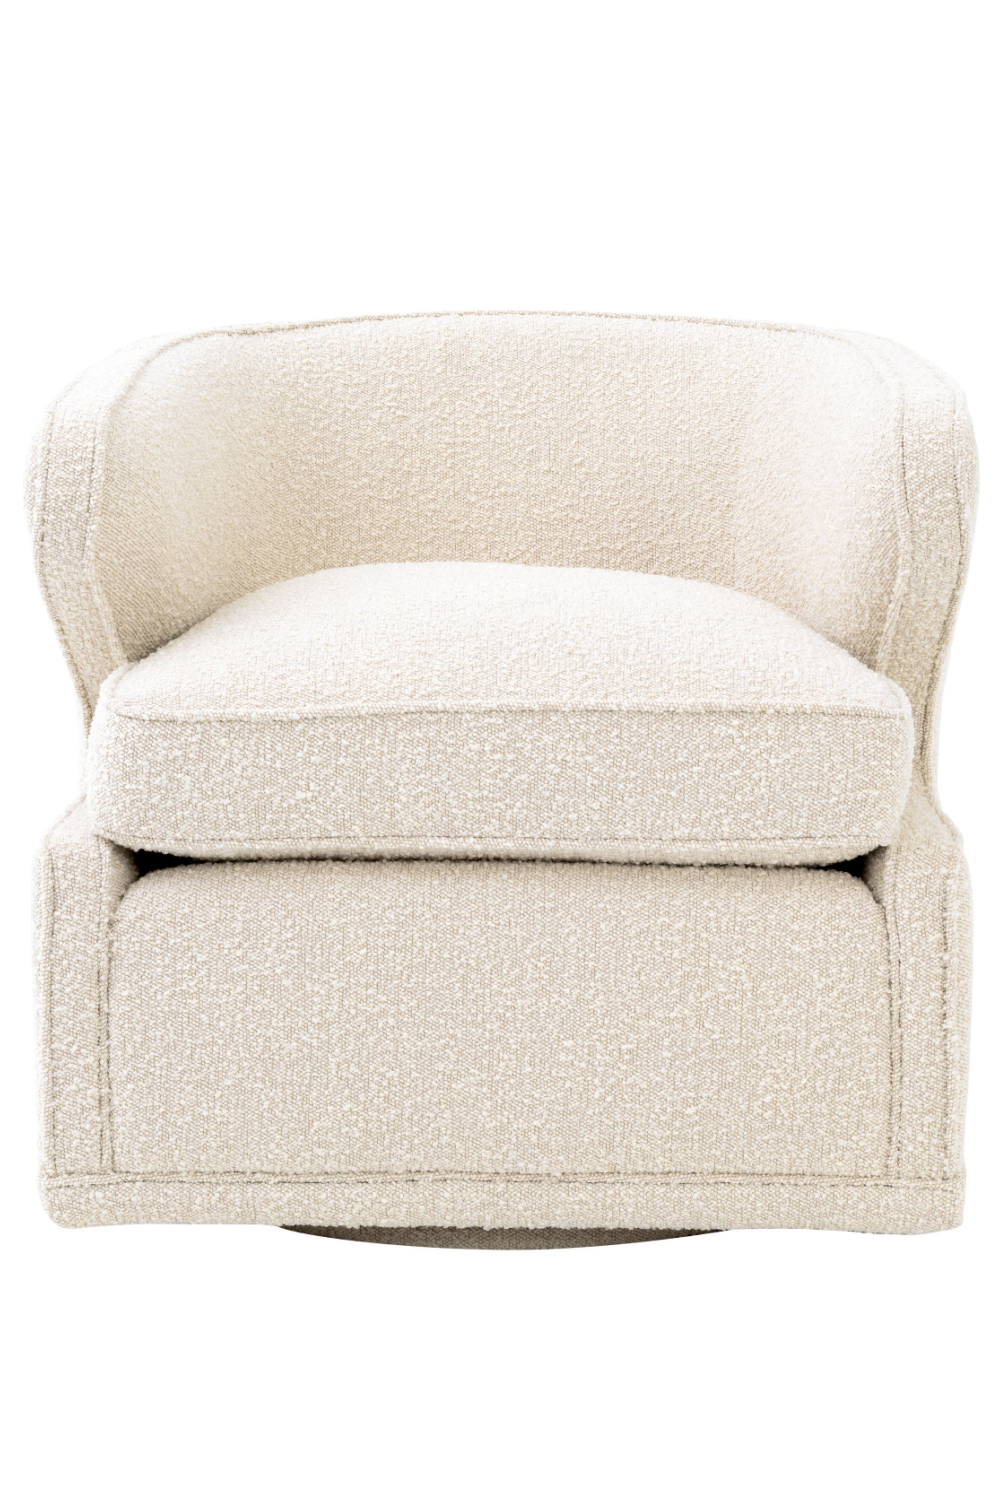 Bouclé Cream Velvet Swivel Chair | Eichholtz Dorset